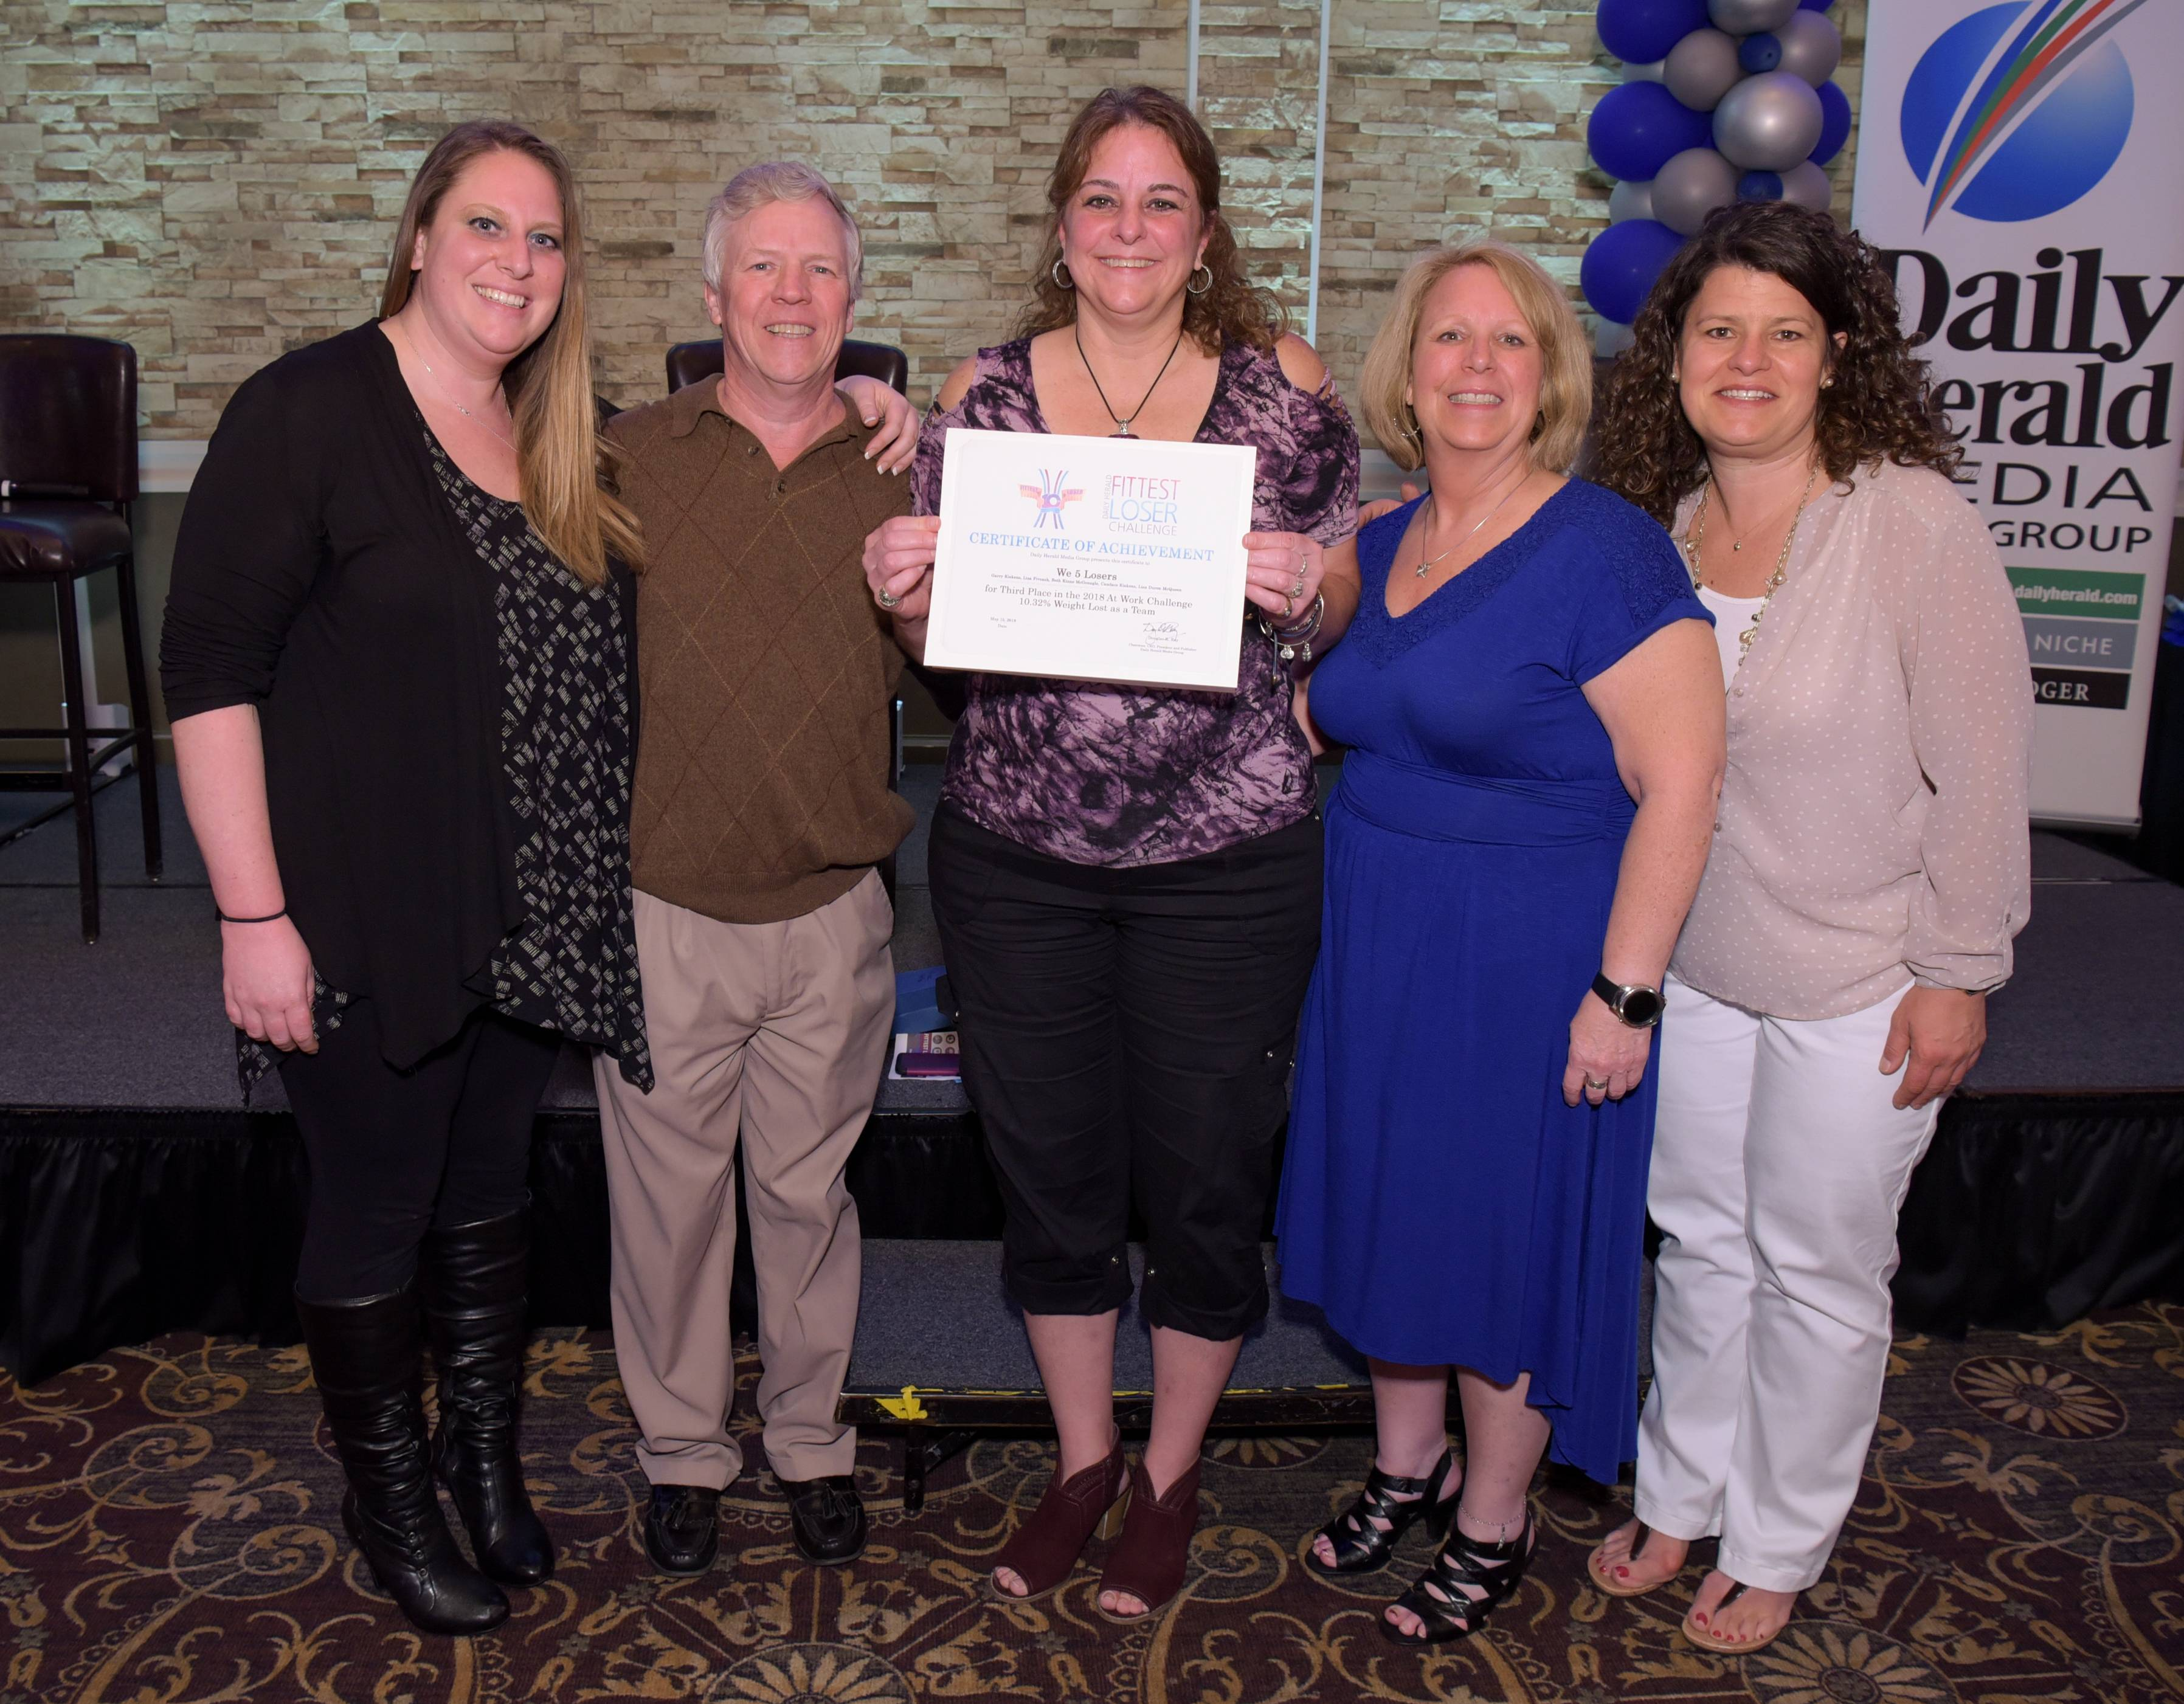 2018 Daily Herald Fittest Loser Challenge At Work 3rd place team We 5 Losers of Kieth Wallace during the awards ceremony at Chandler's Banquets is Schaumburg on Tuesday, May 15, 2018.